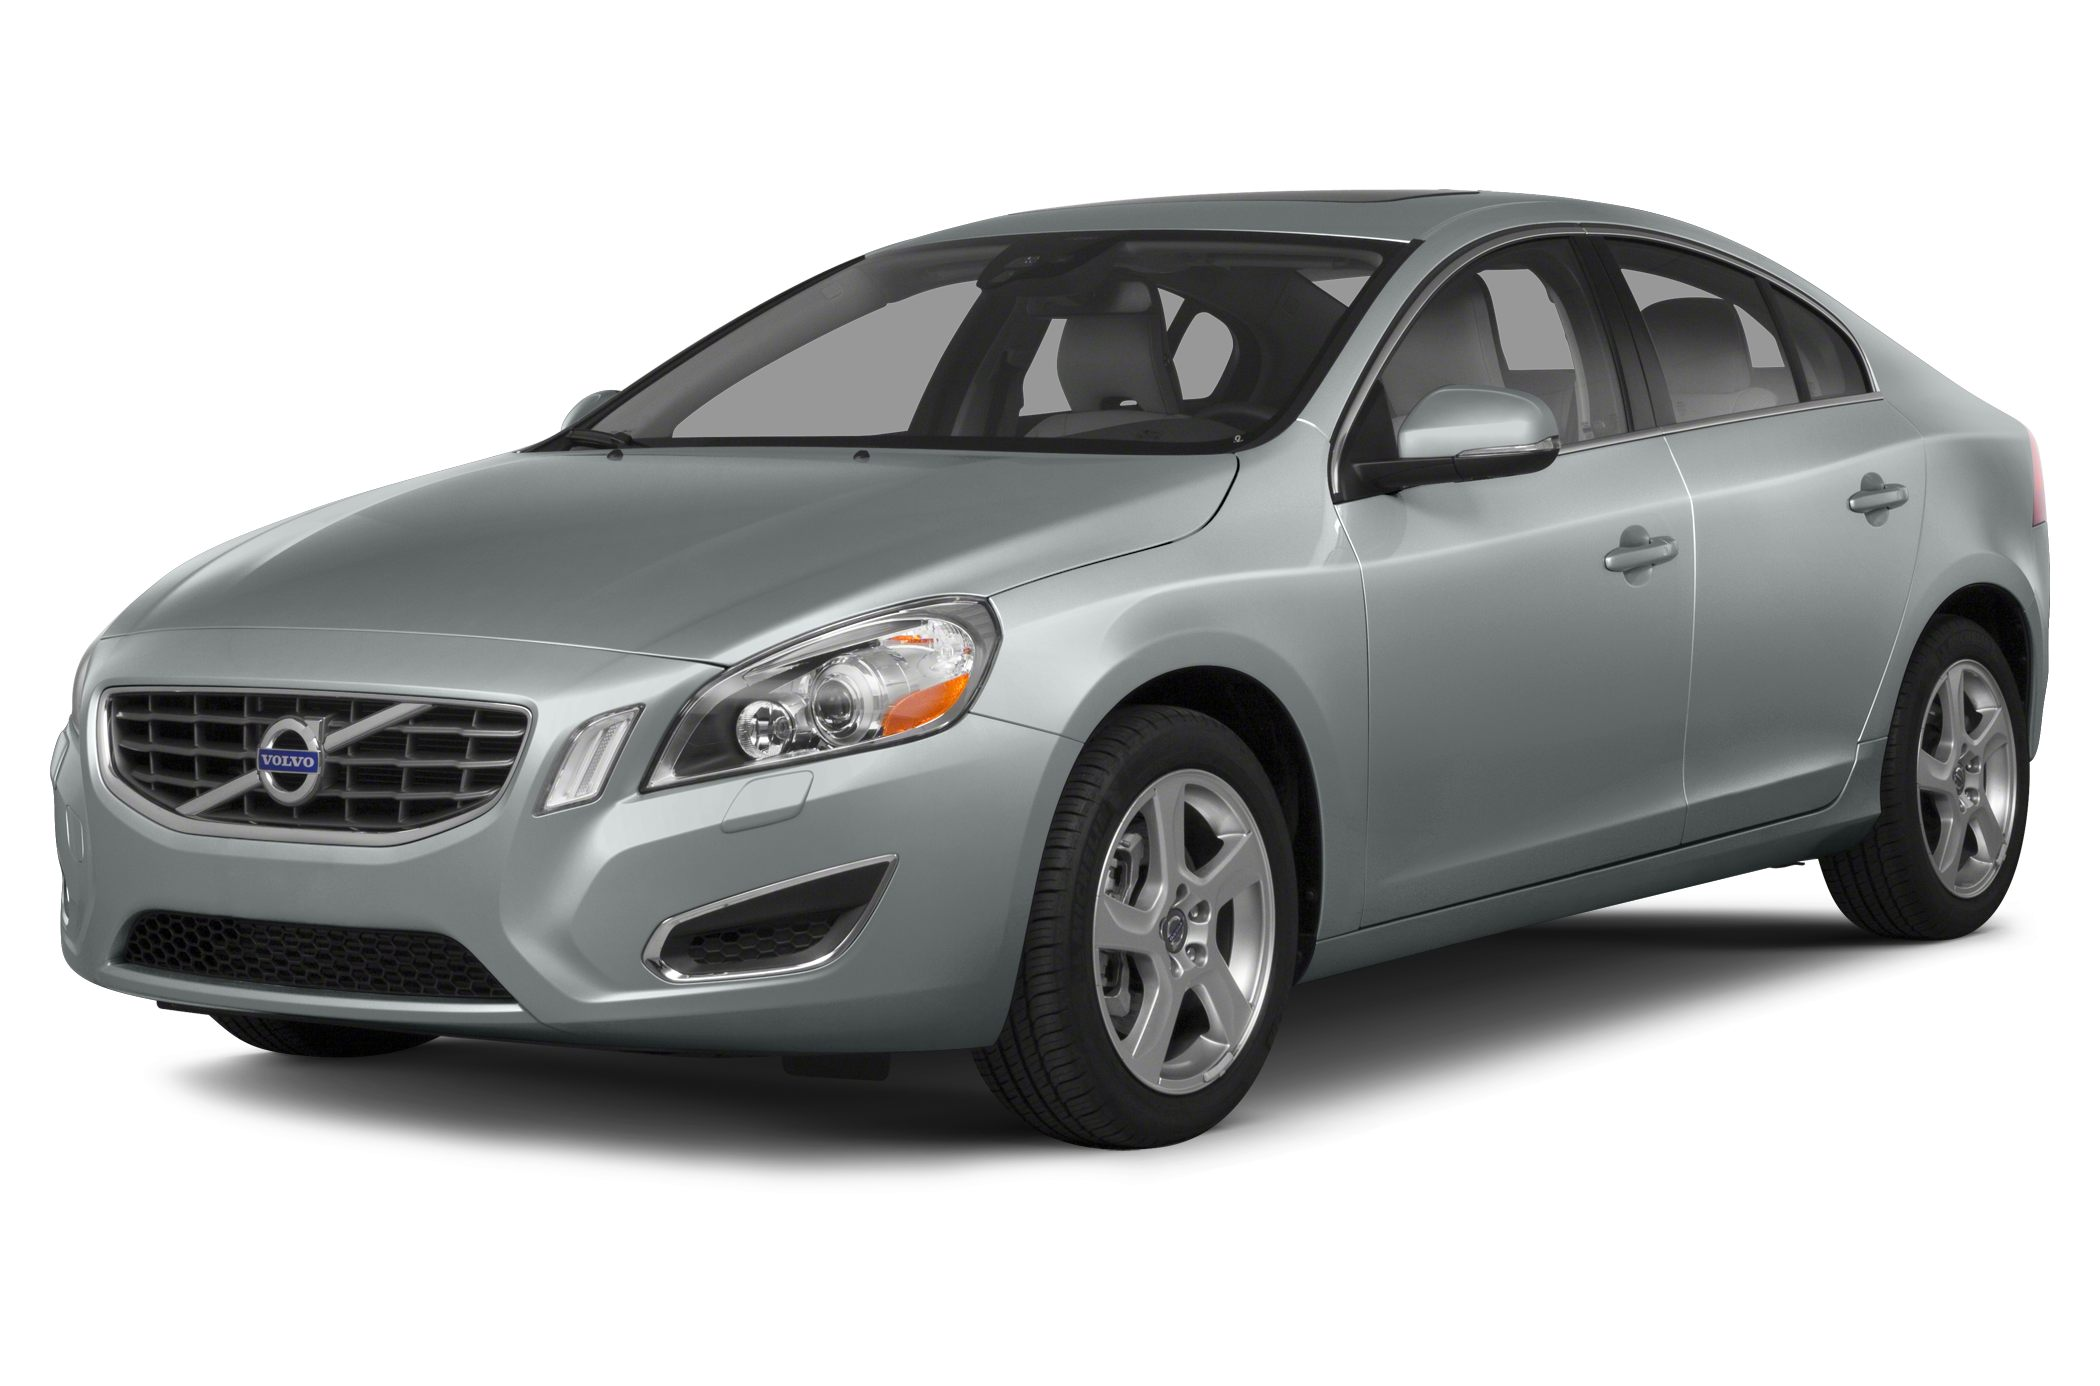 2013 Volvo S60 T5 Sedan for sale in Columbia for $18,900 with 33,353 miles